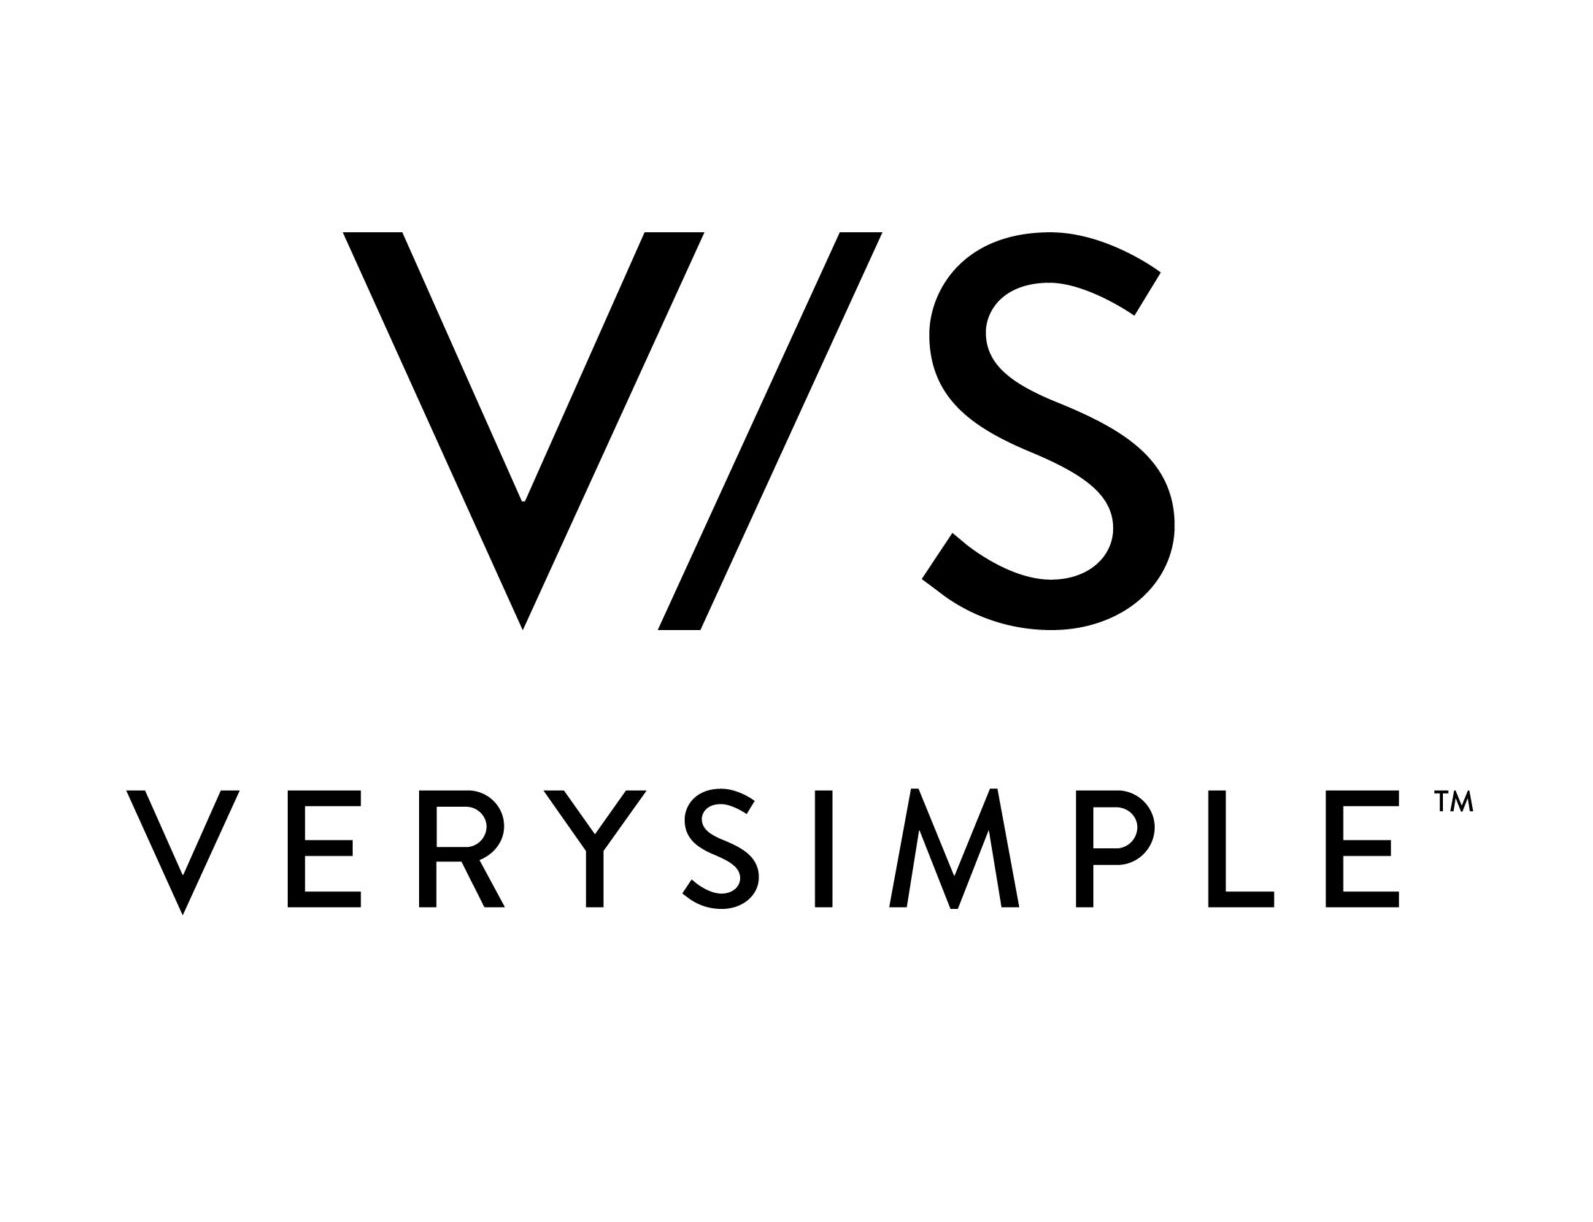 VERYSIMPLE BLACK LOGO